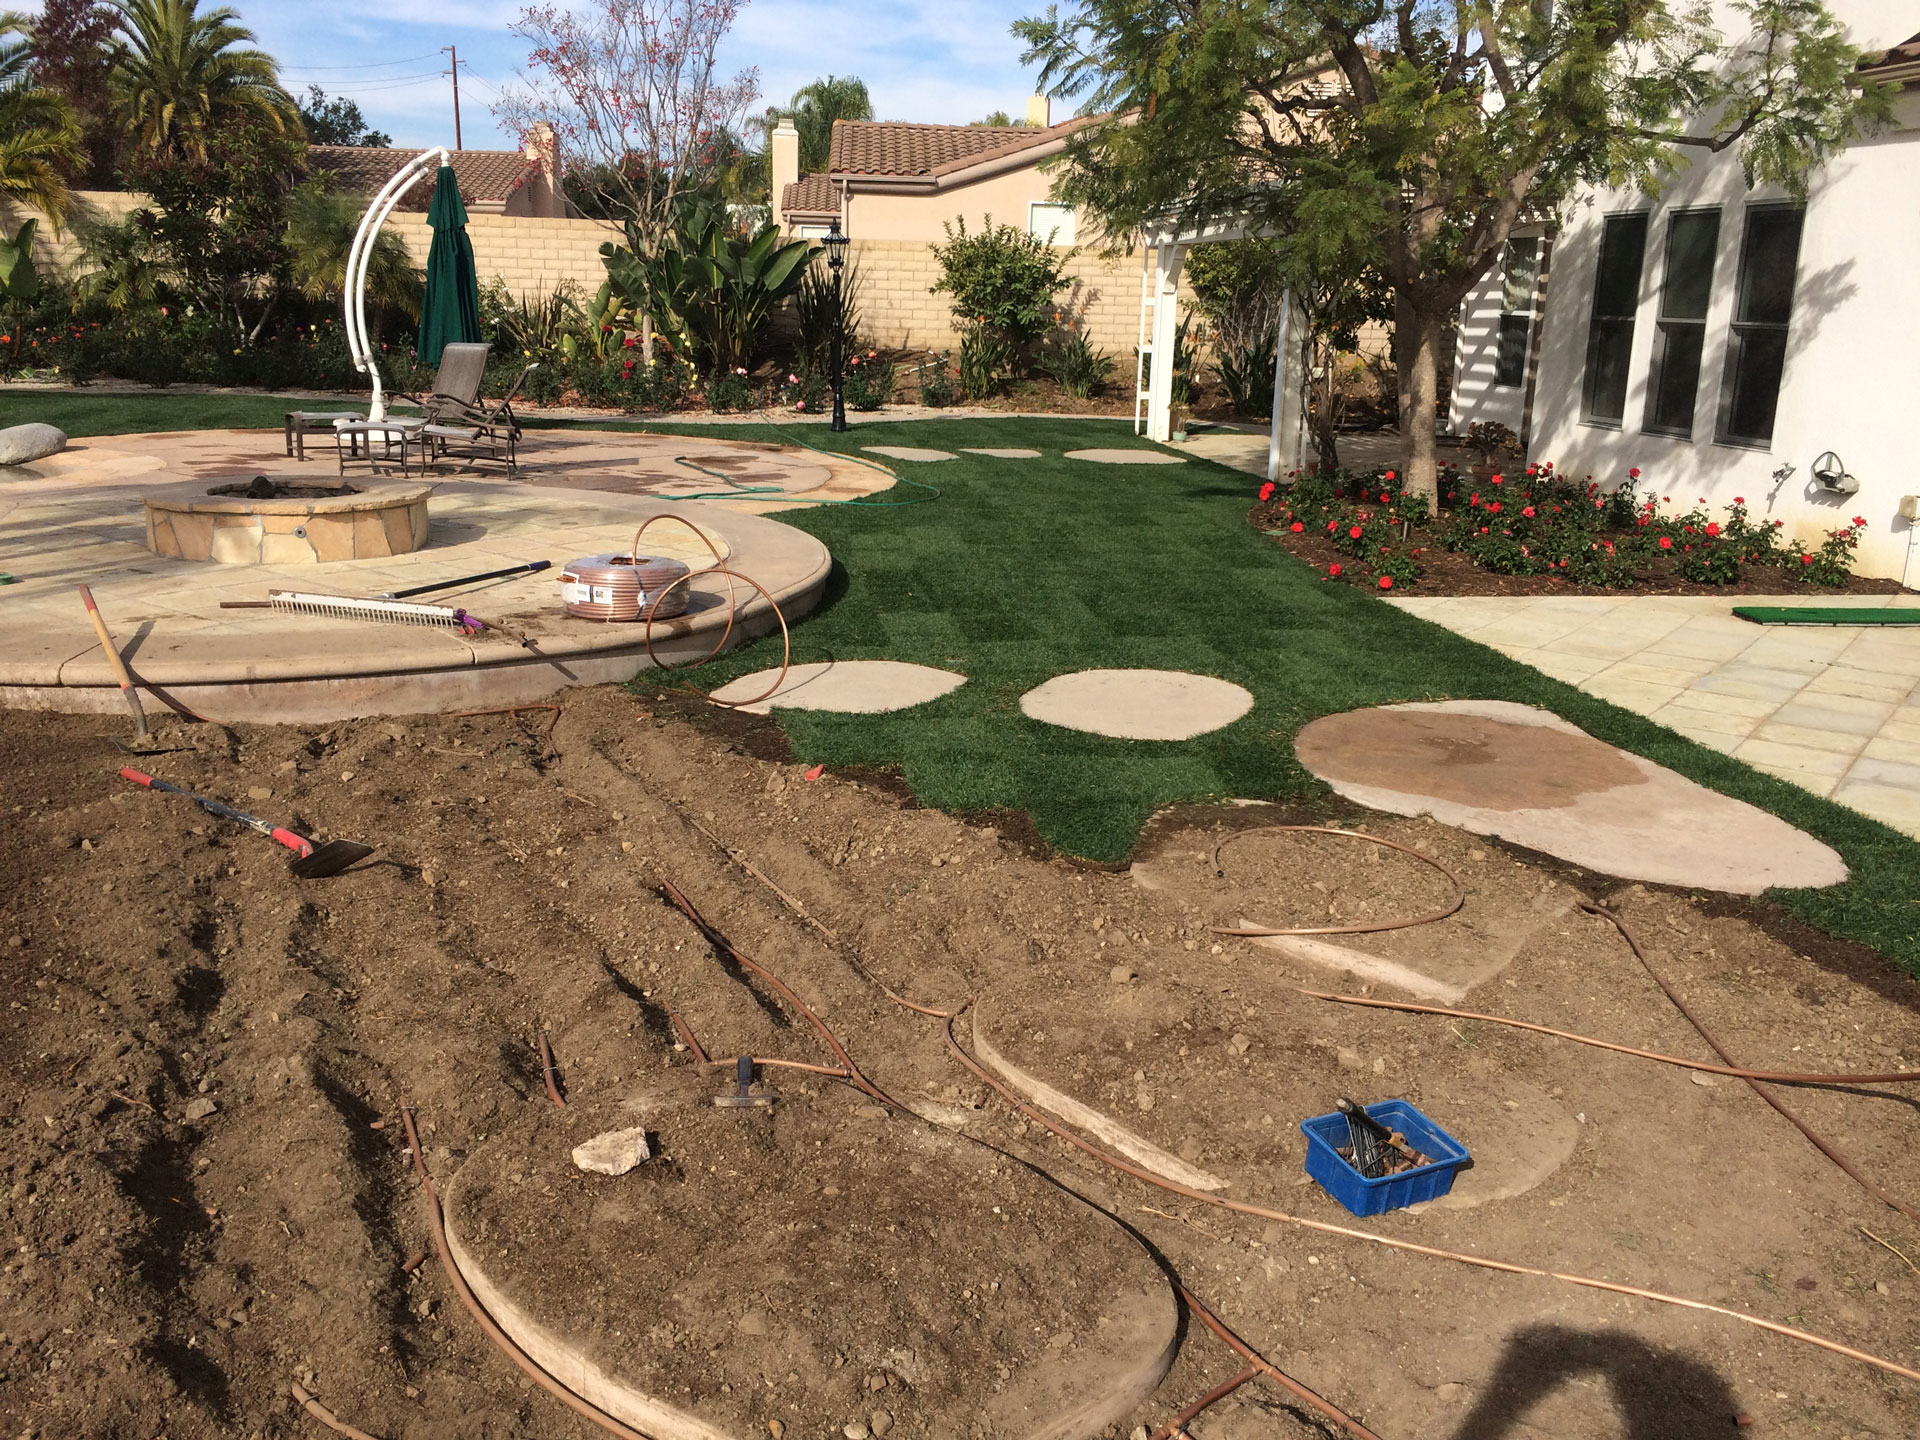 Conejo Complete Landscape Inc. Landscape Maintenance, Landscape Installation and Lawn Care slide 2